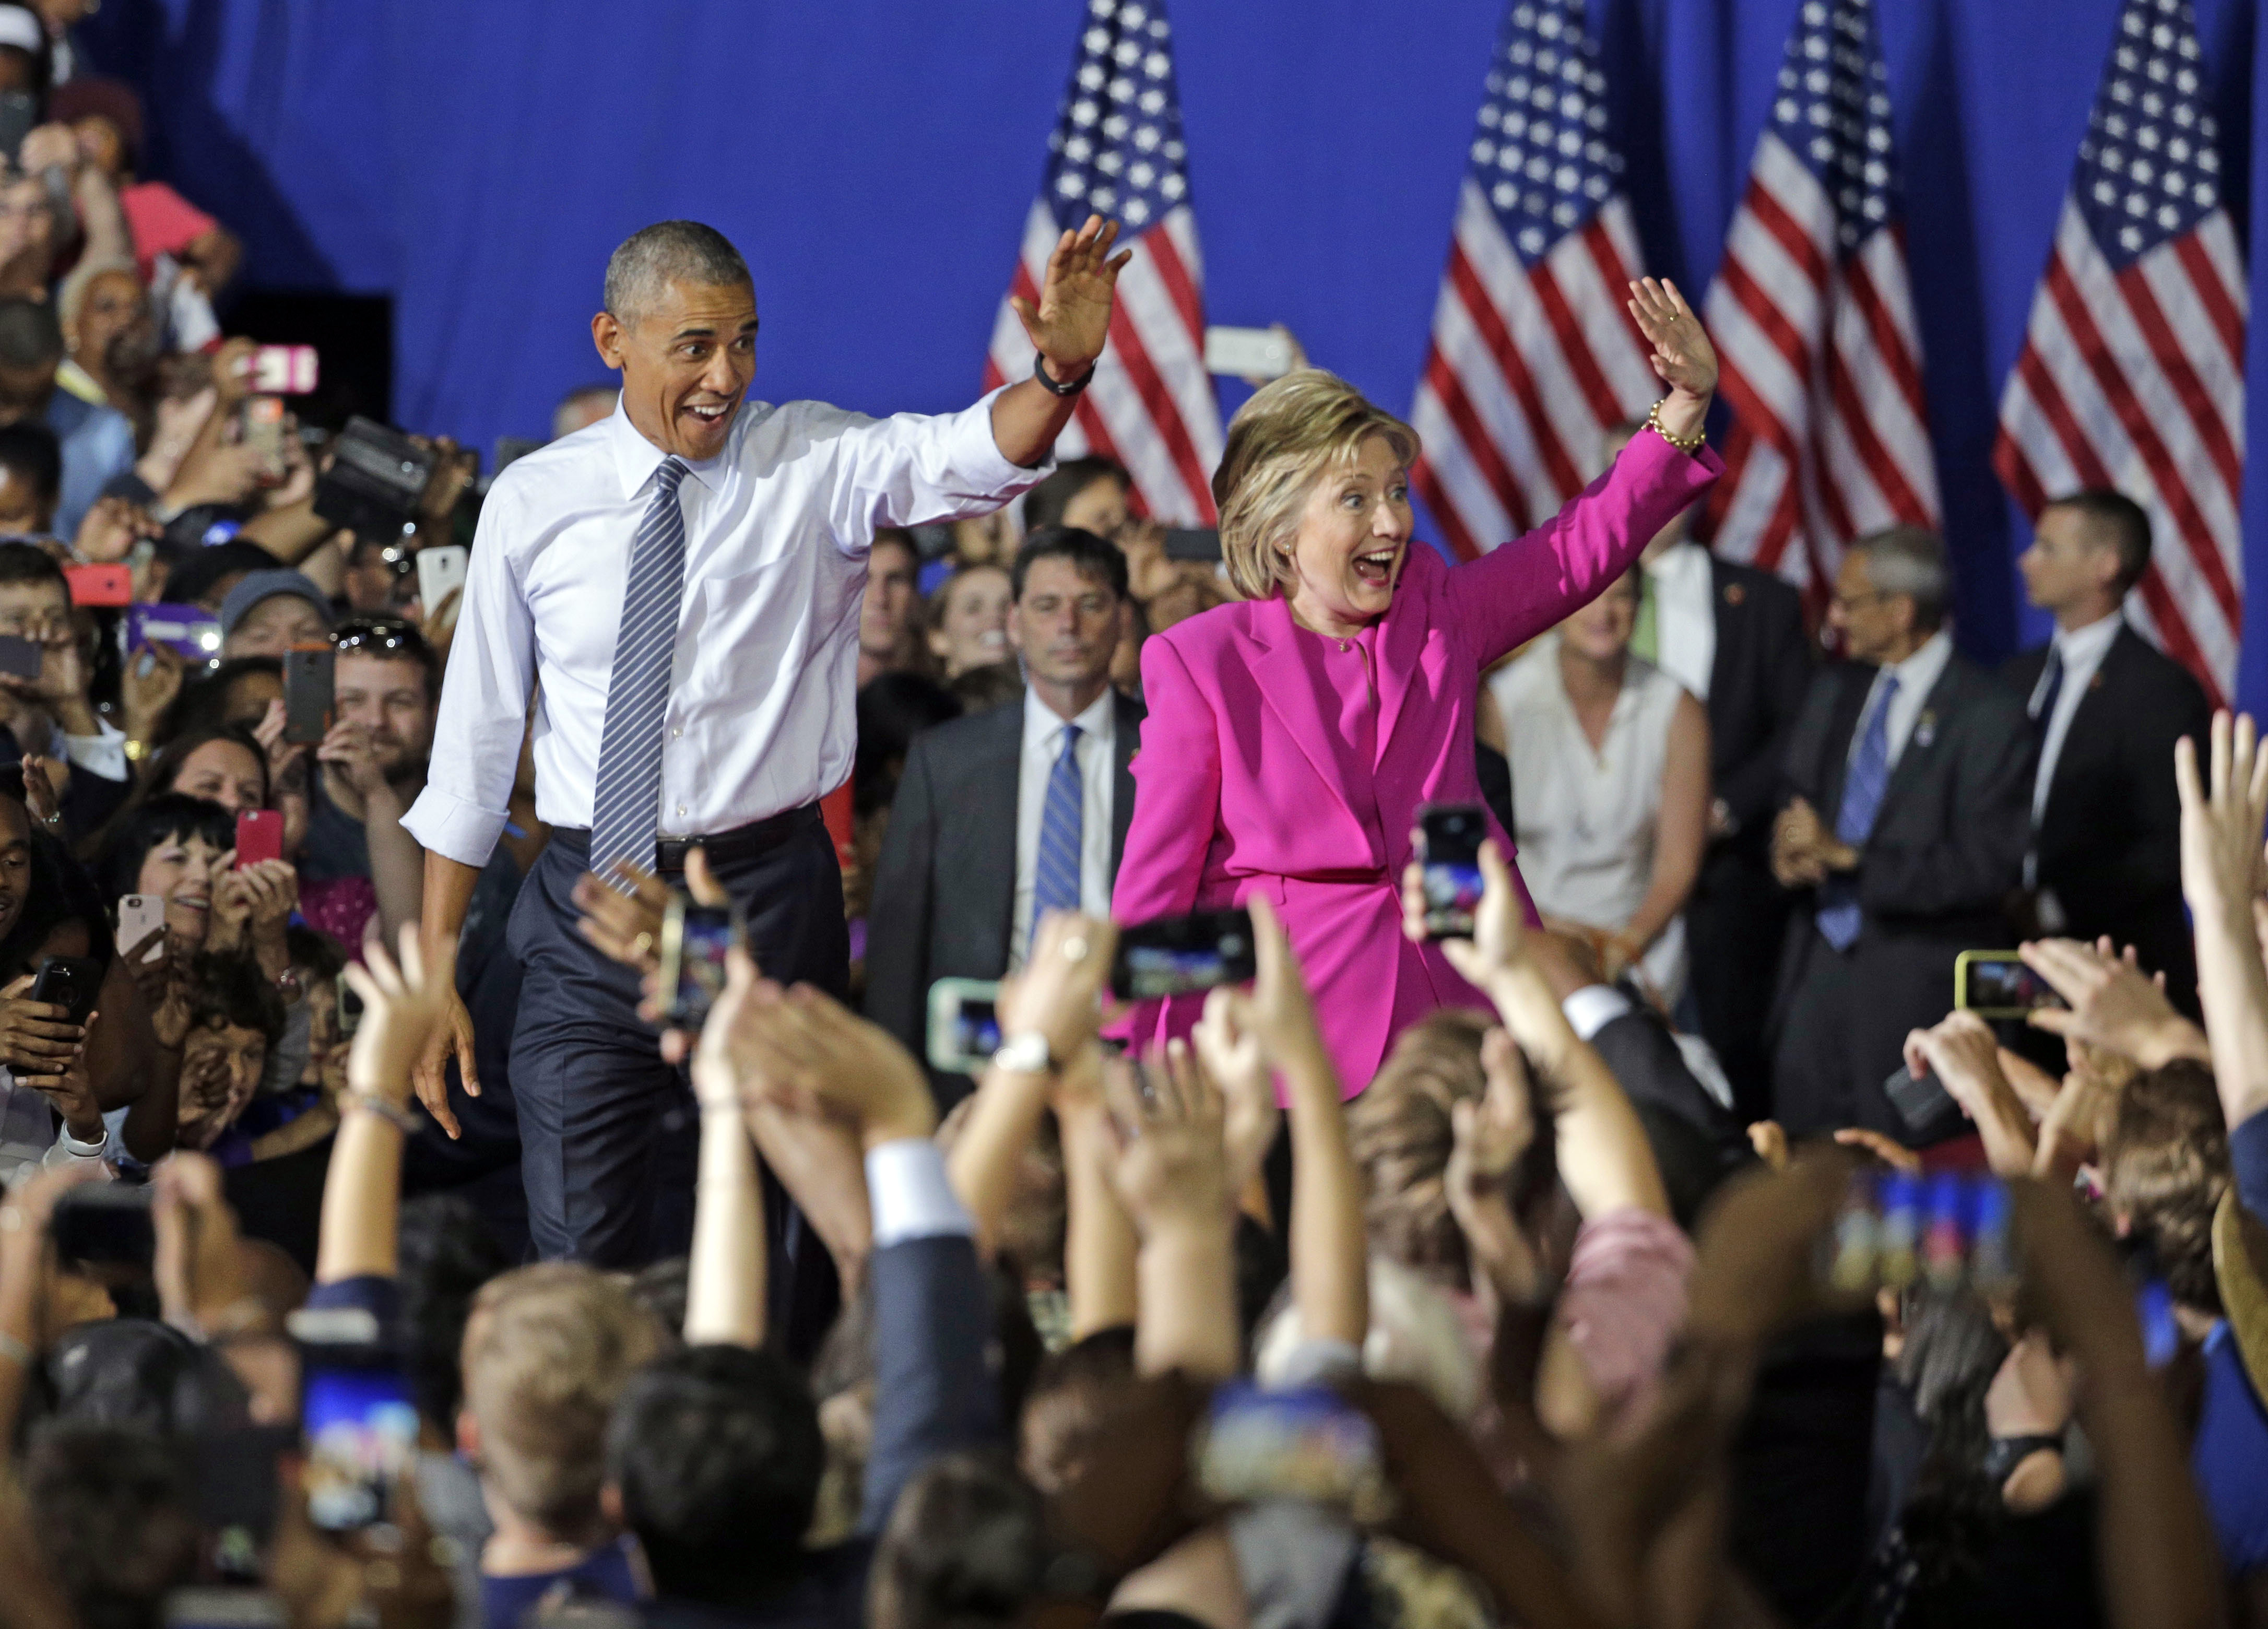 July 2016 President Barack Obama and Democratic presidential candidate Hillary Clinton wave to the crowd during a campaign rally for Clinton in Charlotte, N.C., on July 5, 2016.